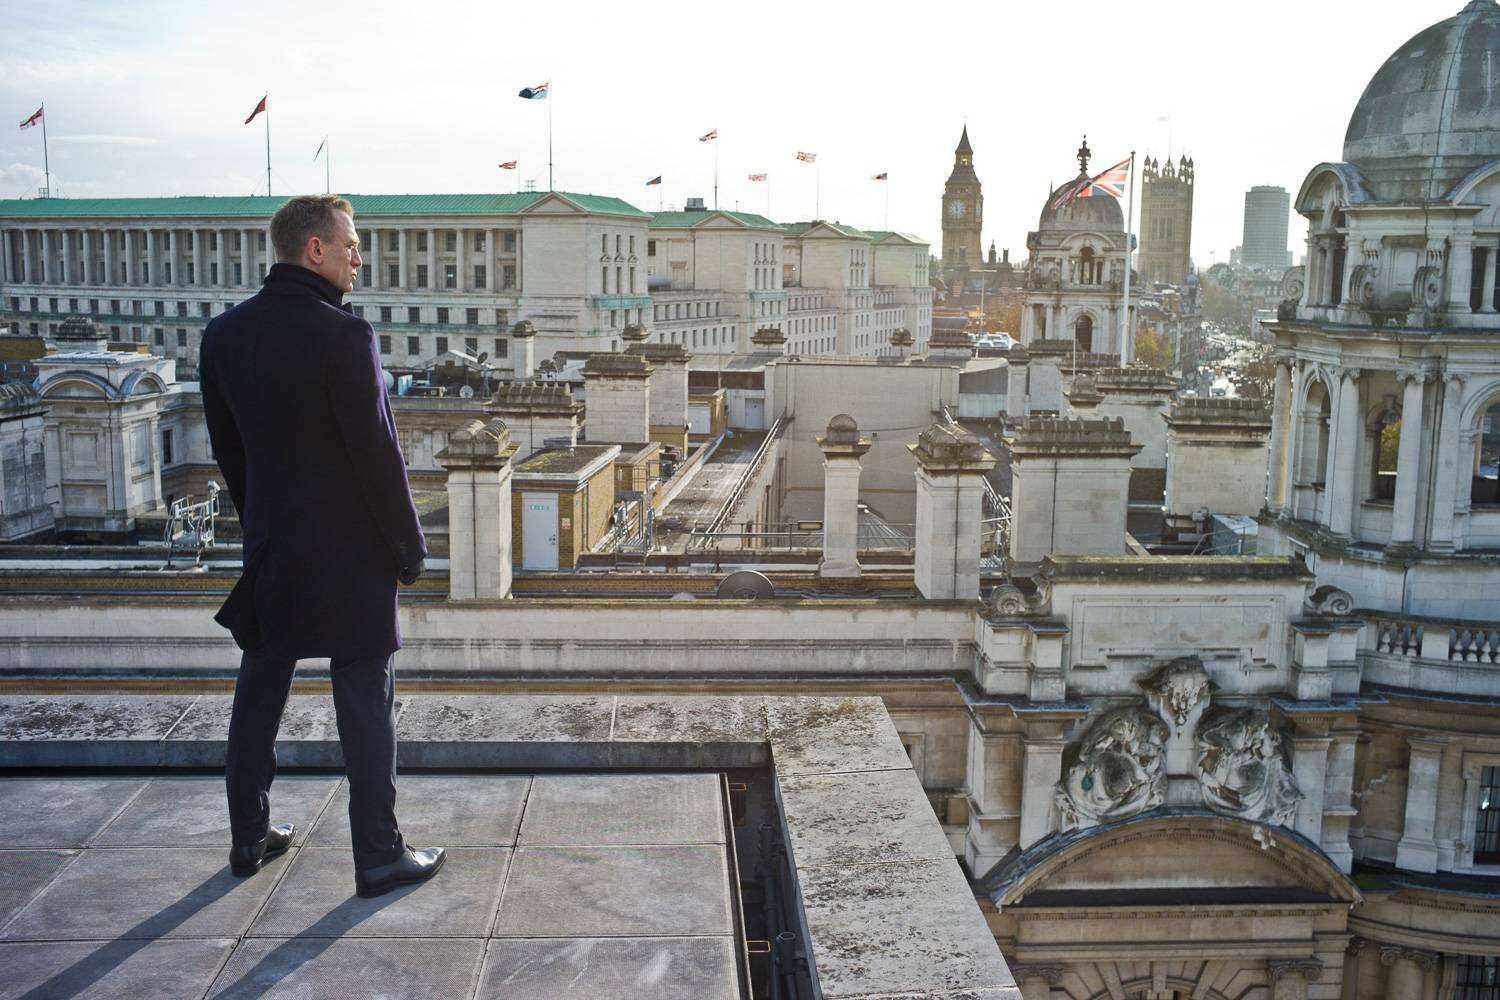 James Bond e oltre: Londra location perfetta per un film